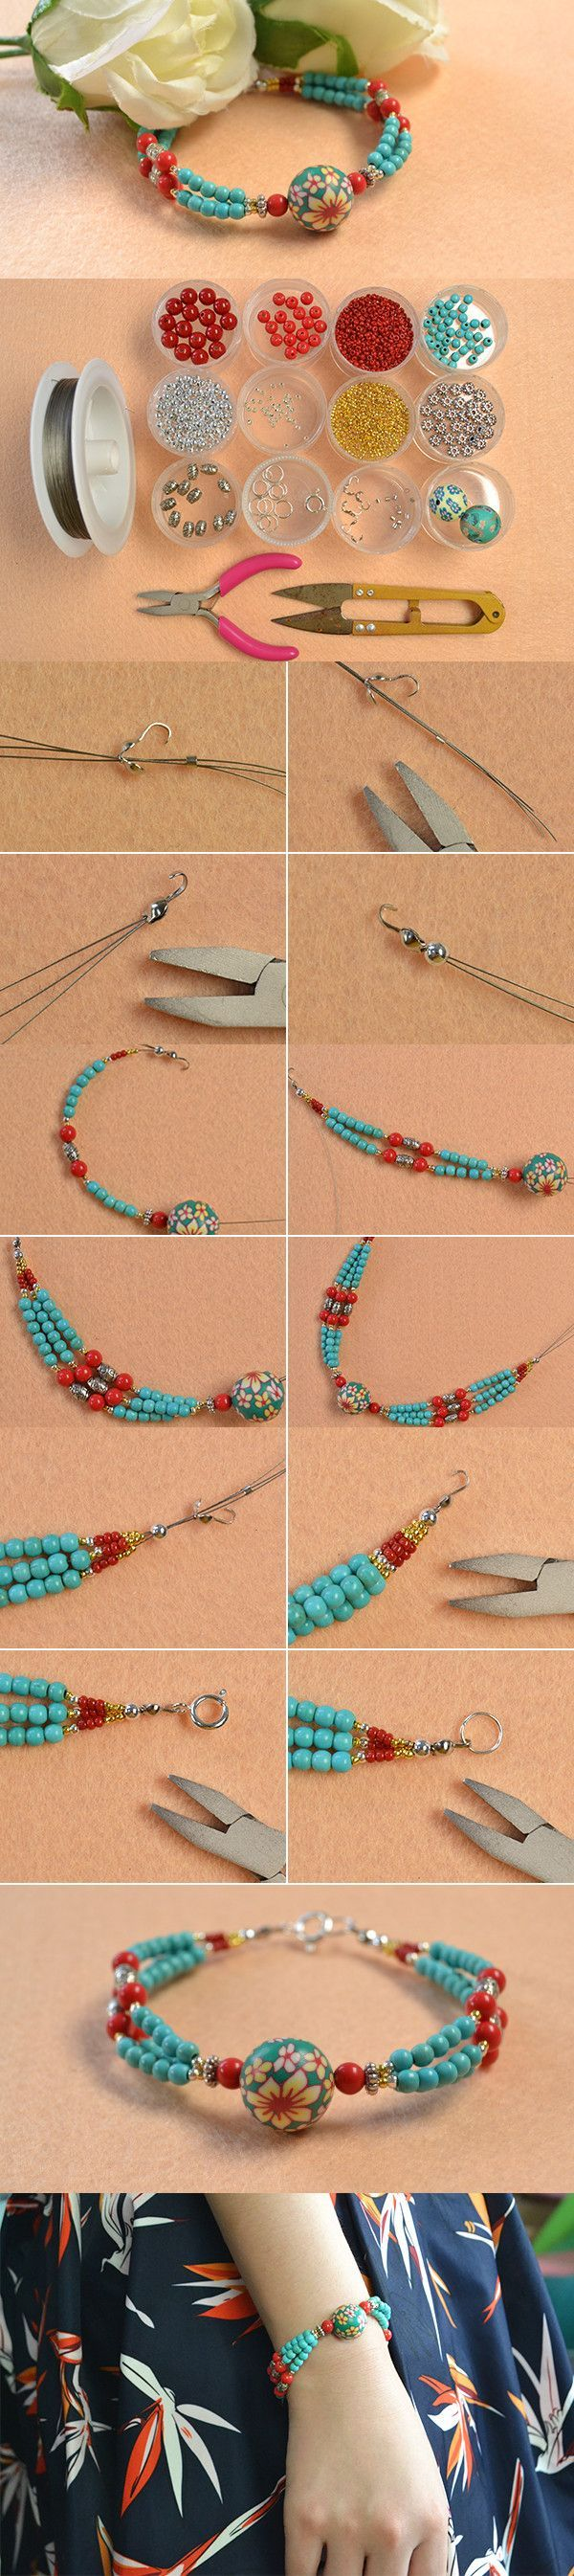 cool DIY Bijoux - Handmade Ethnic Beaded Bracelet with Turquoise Beads...